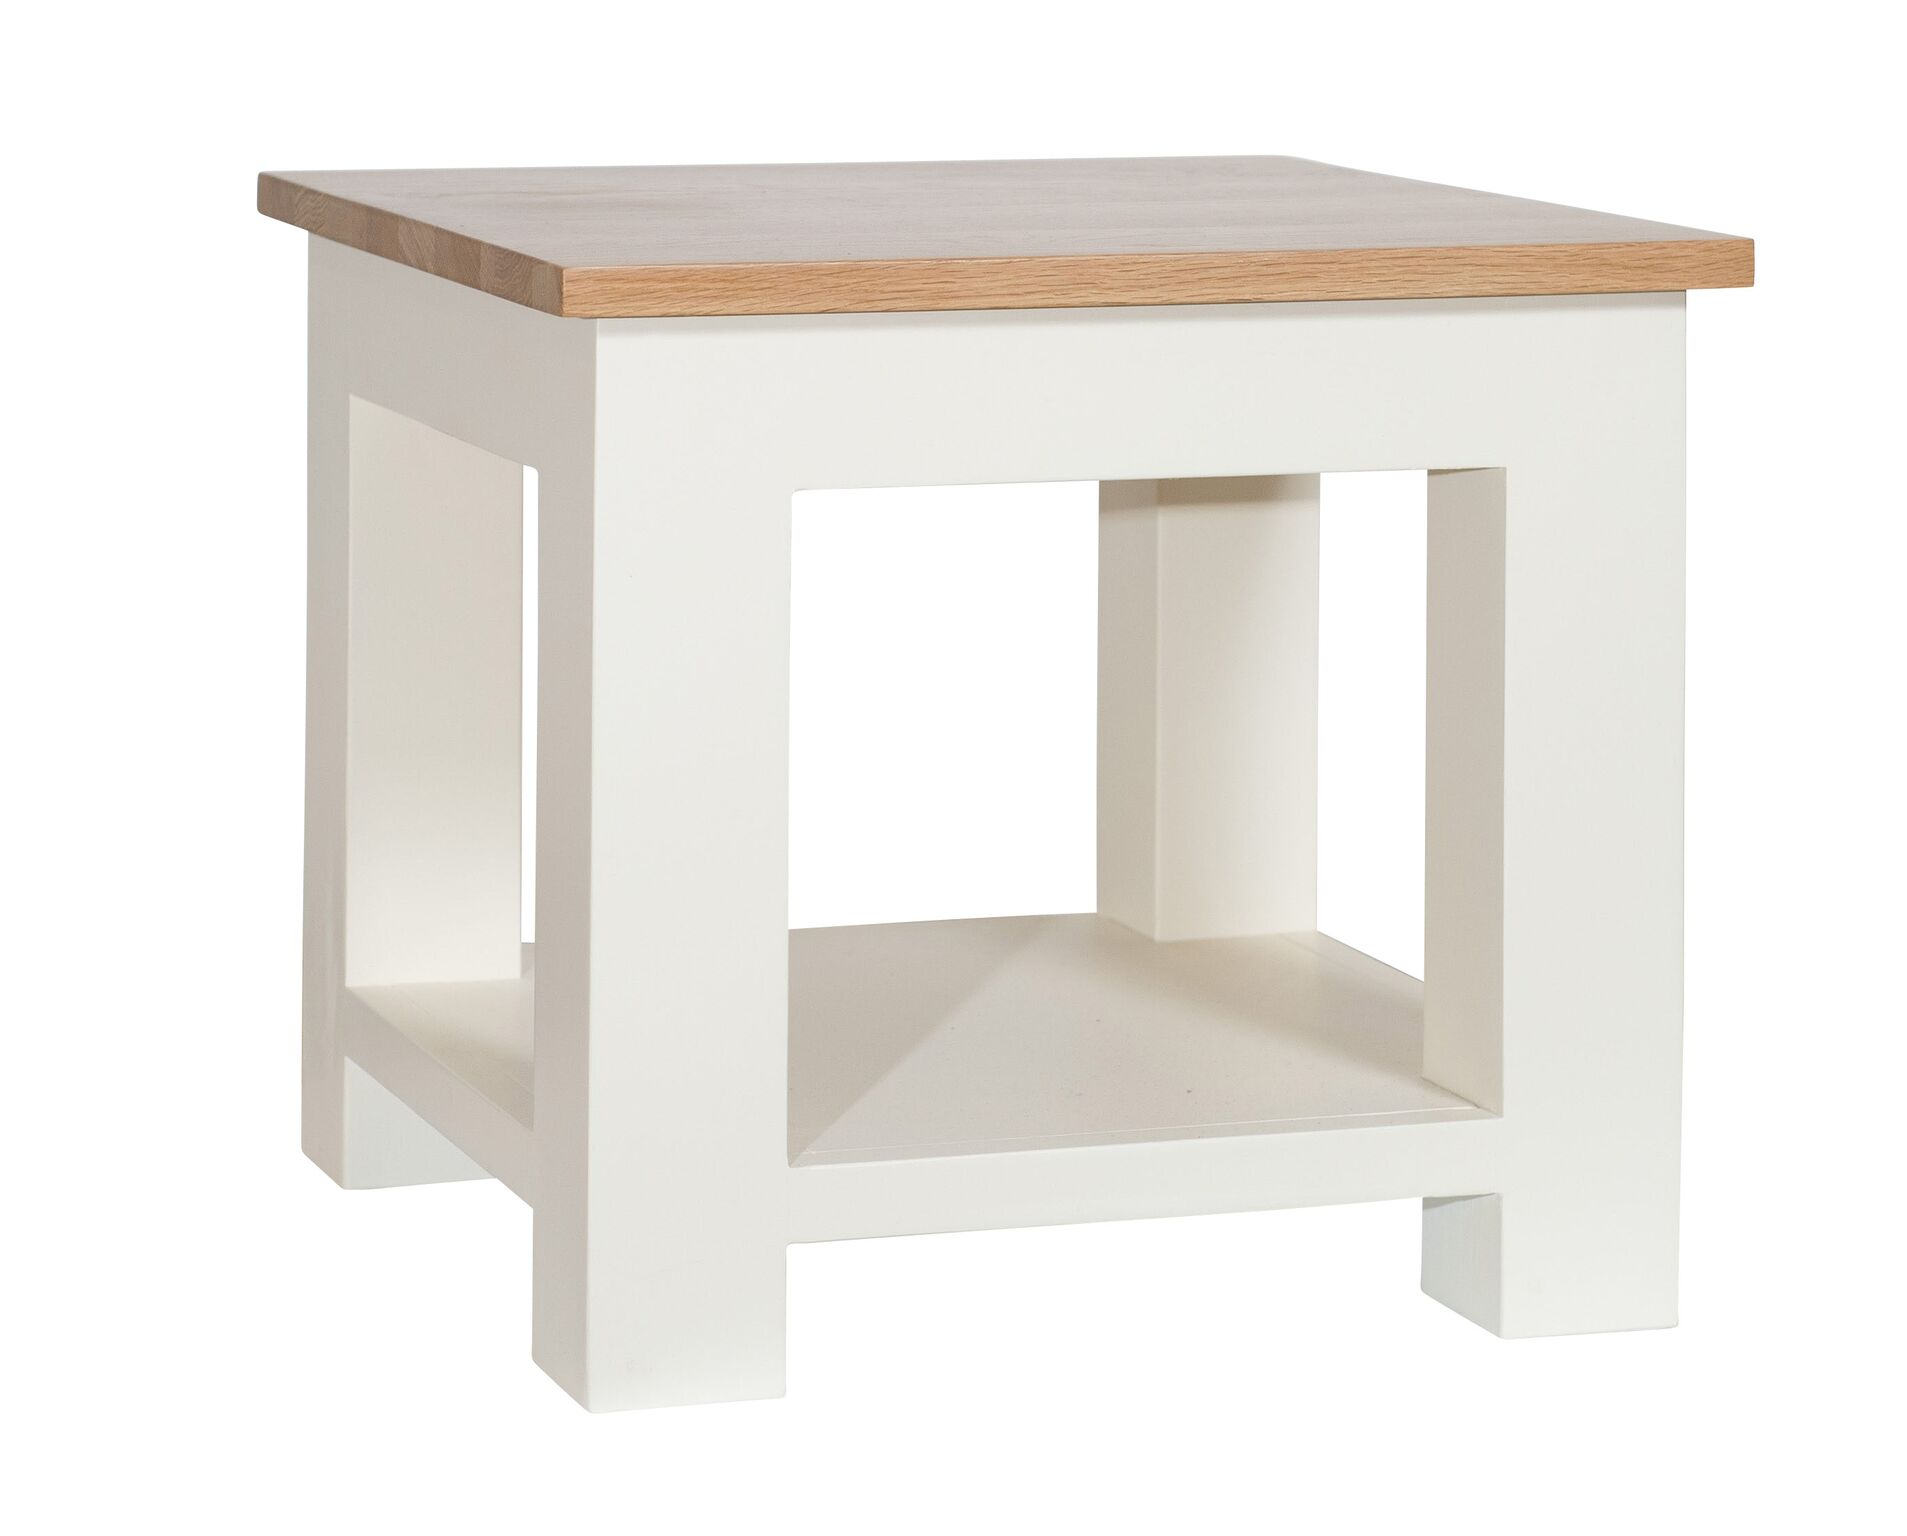 Cream Lamp Tables For Living Room